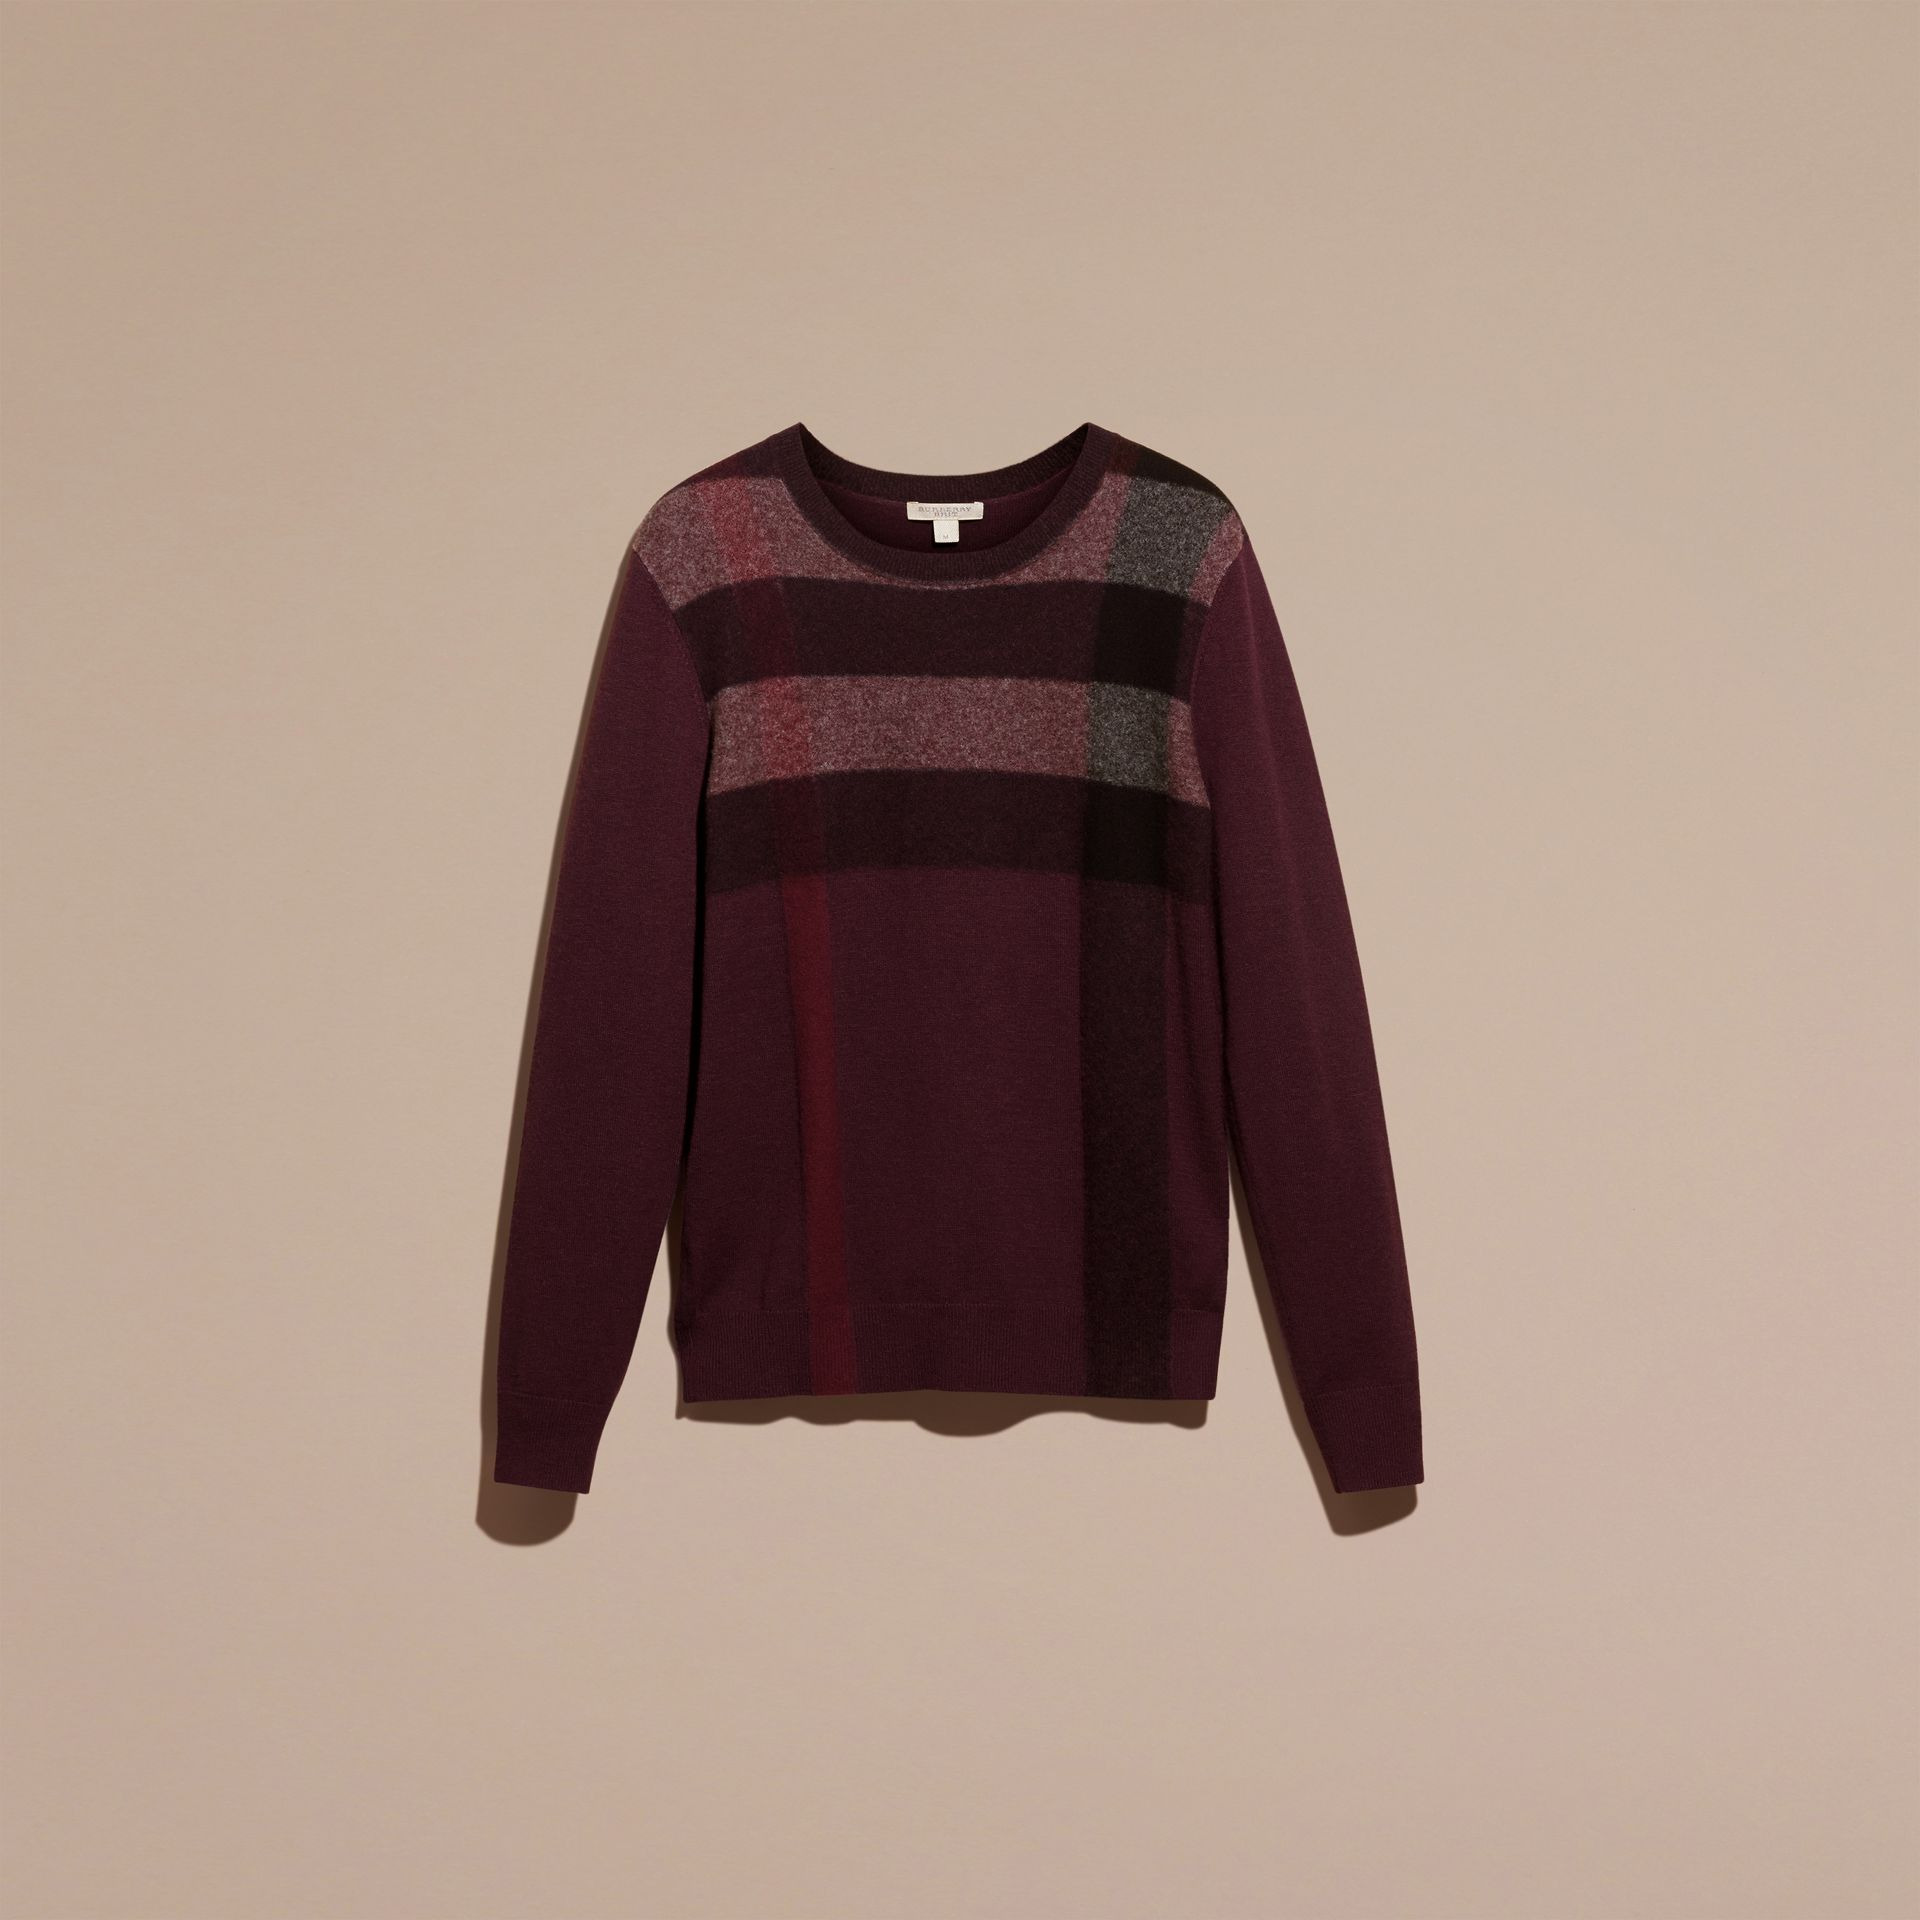 Burgundy red Graphic Check Cashmere Cotton Sweater Burgundy Red - gallery image 4